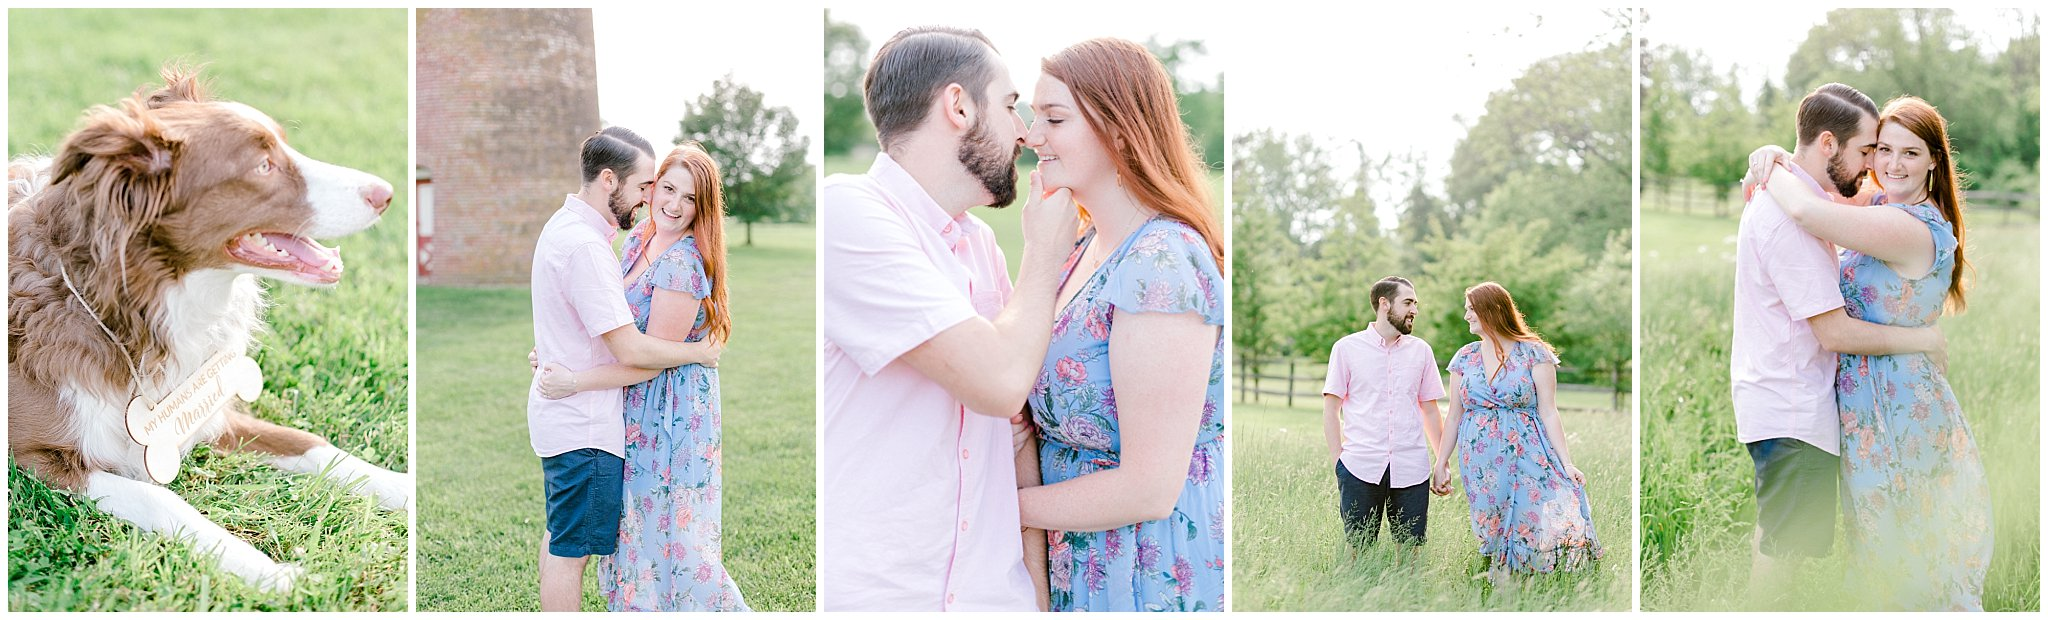 Manor house at prophecy Creek Blue Bell PA wedding venue summertime field engagement session lehigh valley based wedding and lifestyle photographe_0024.jpg